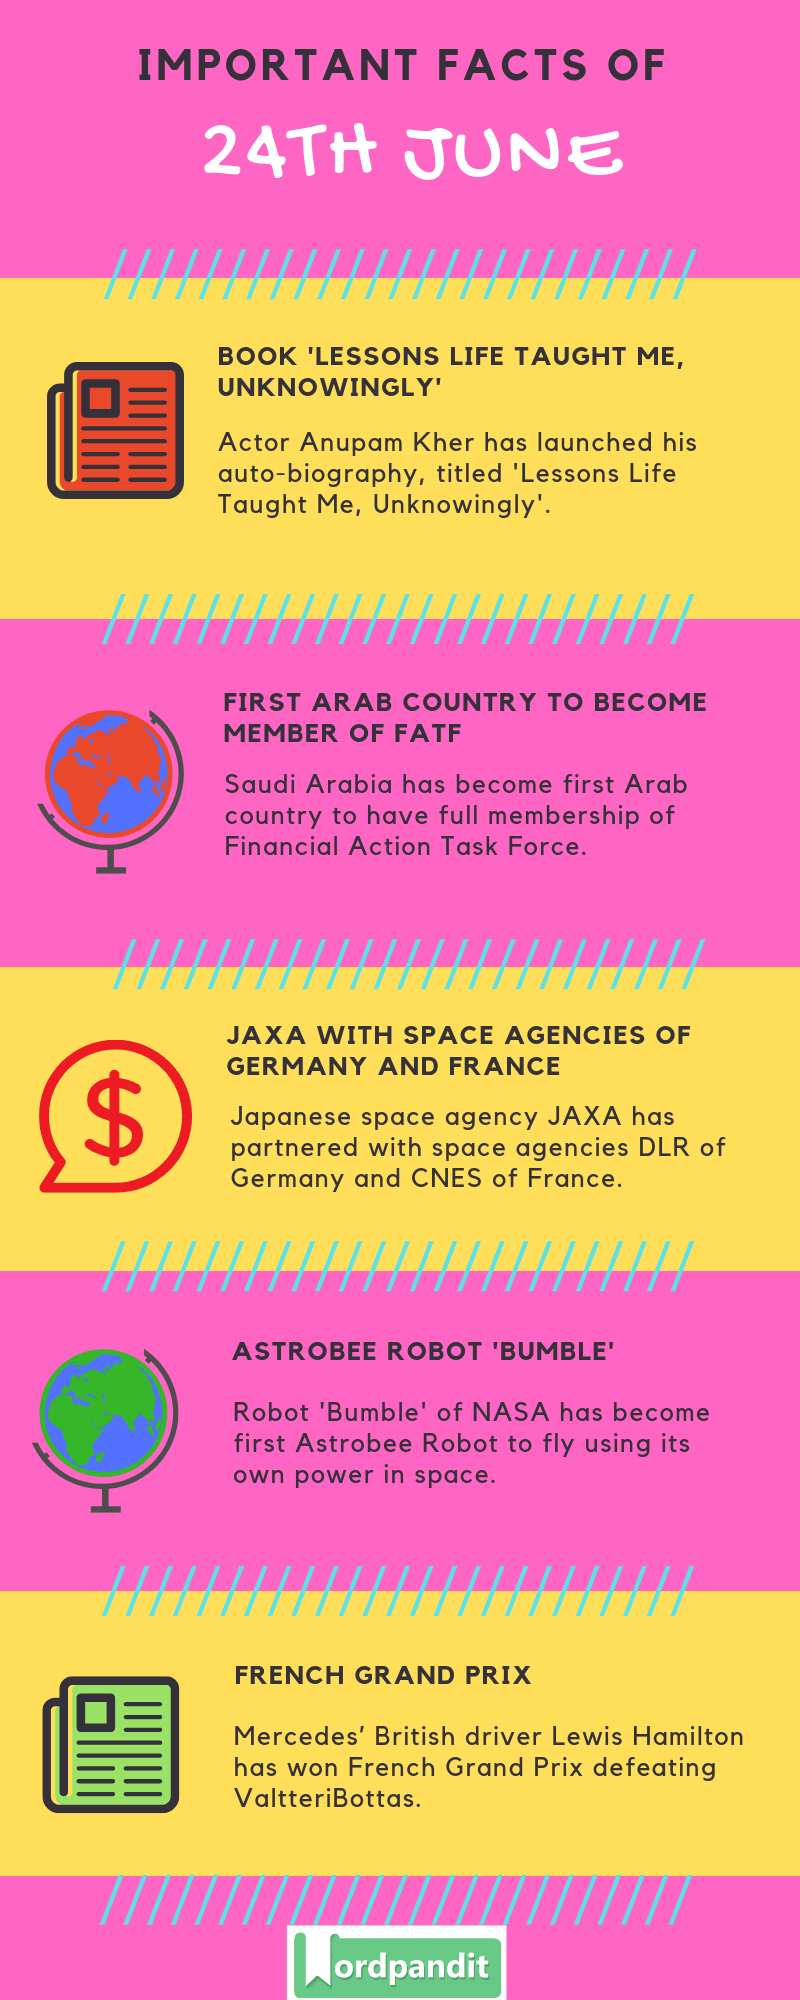 Daily Current Affairs 24 June 2019 Current Affairs Quiz 24 June 2019 Current Affairs Infographic